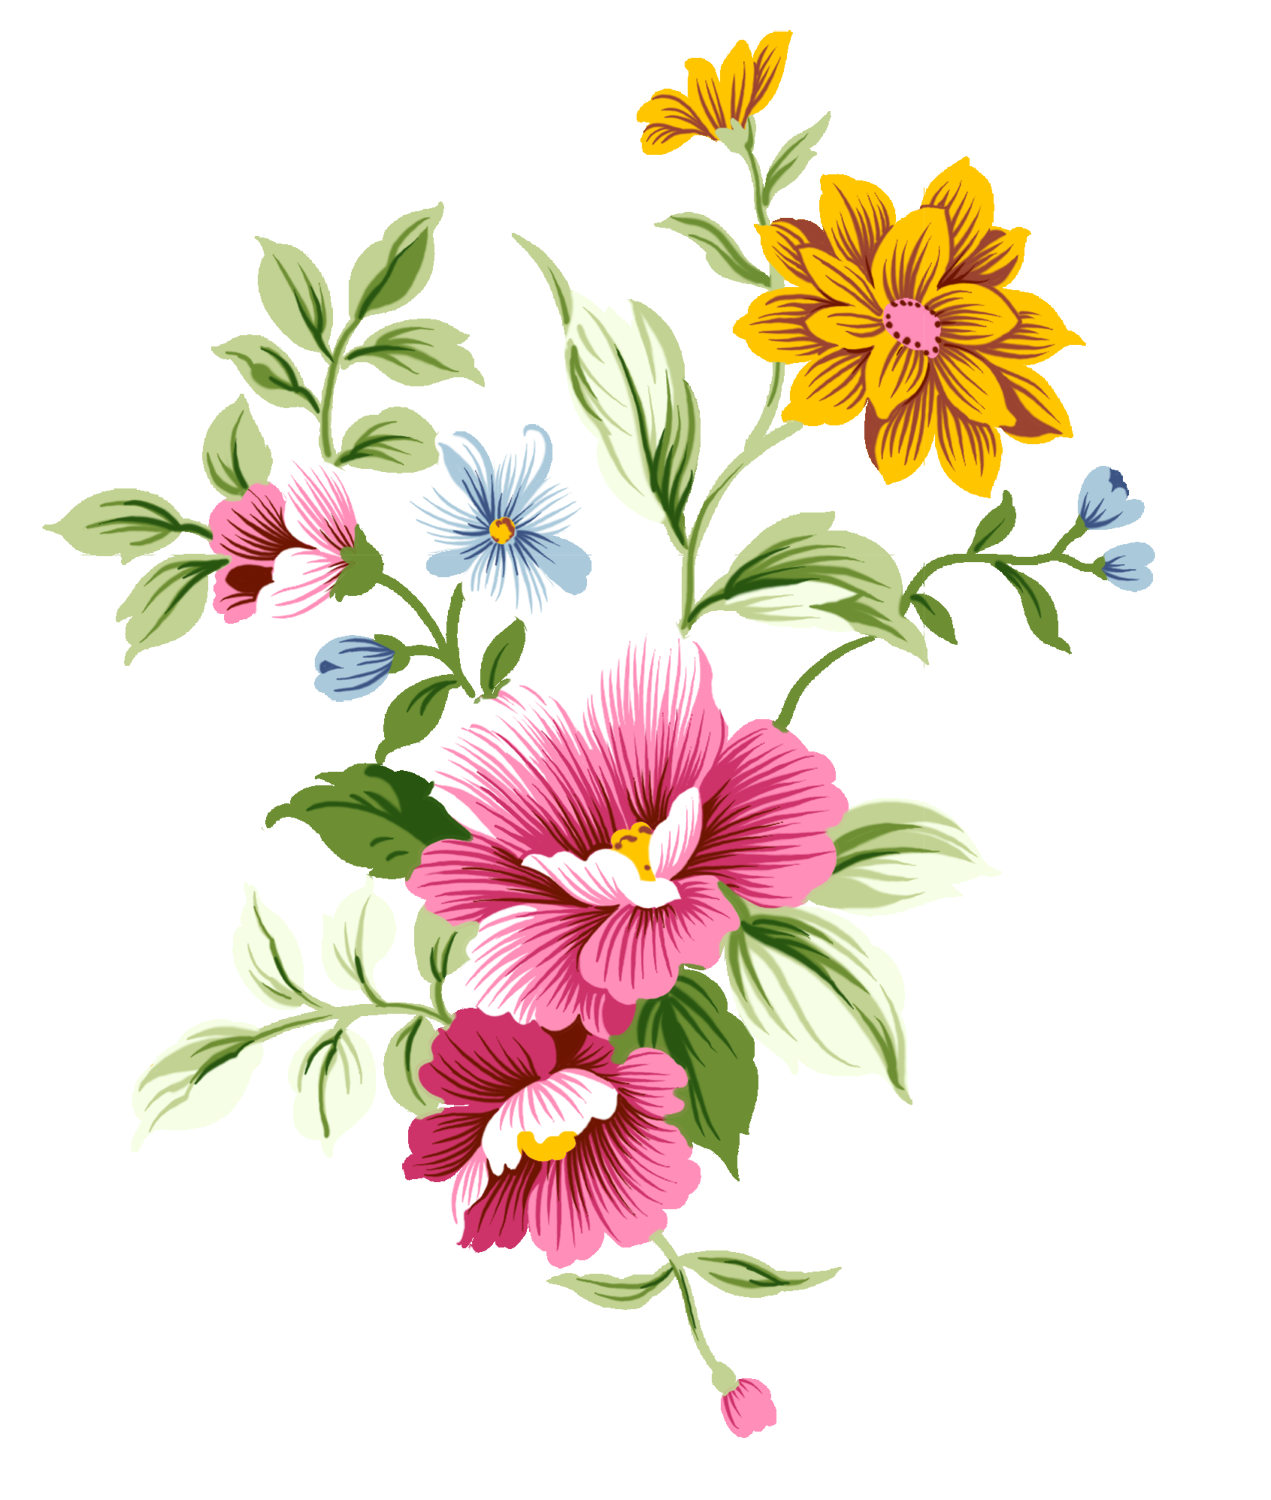 Download Abstract Flower Picture HQ PNG Image   FreePNGImg